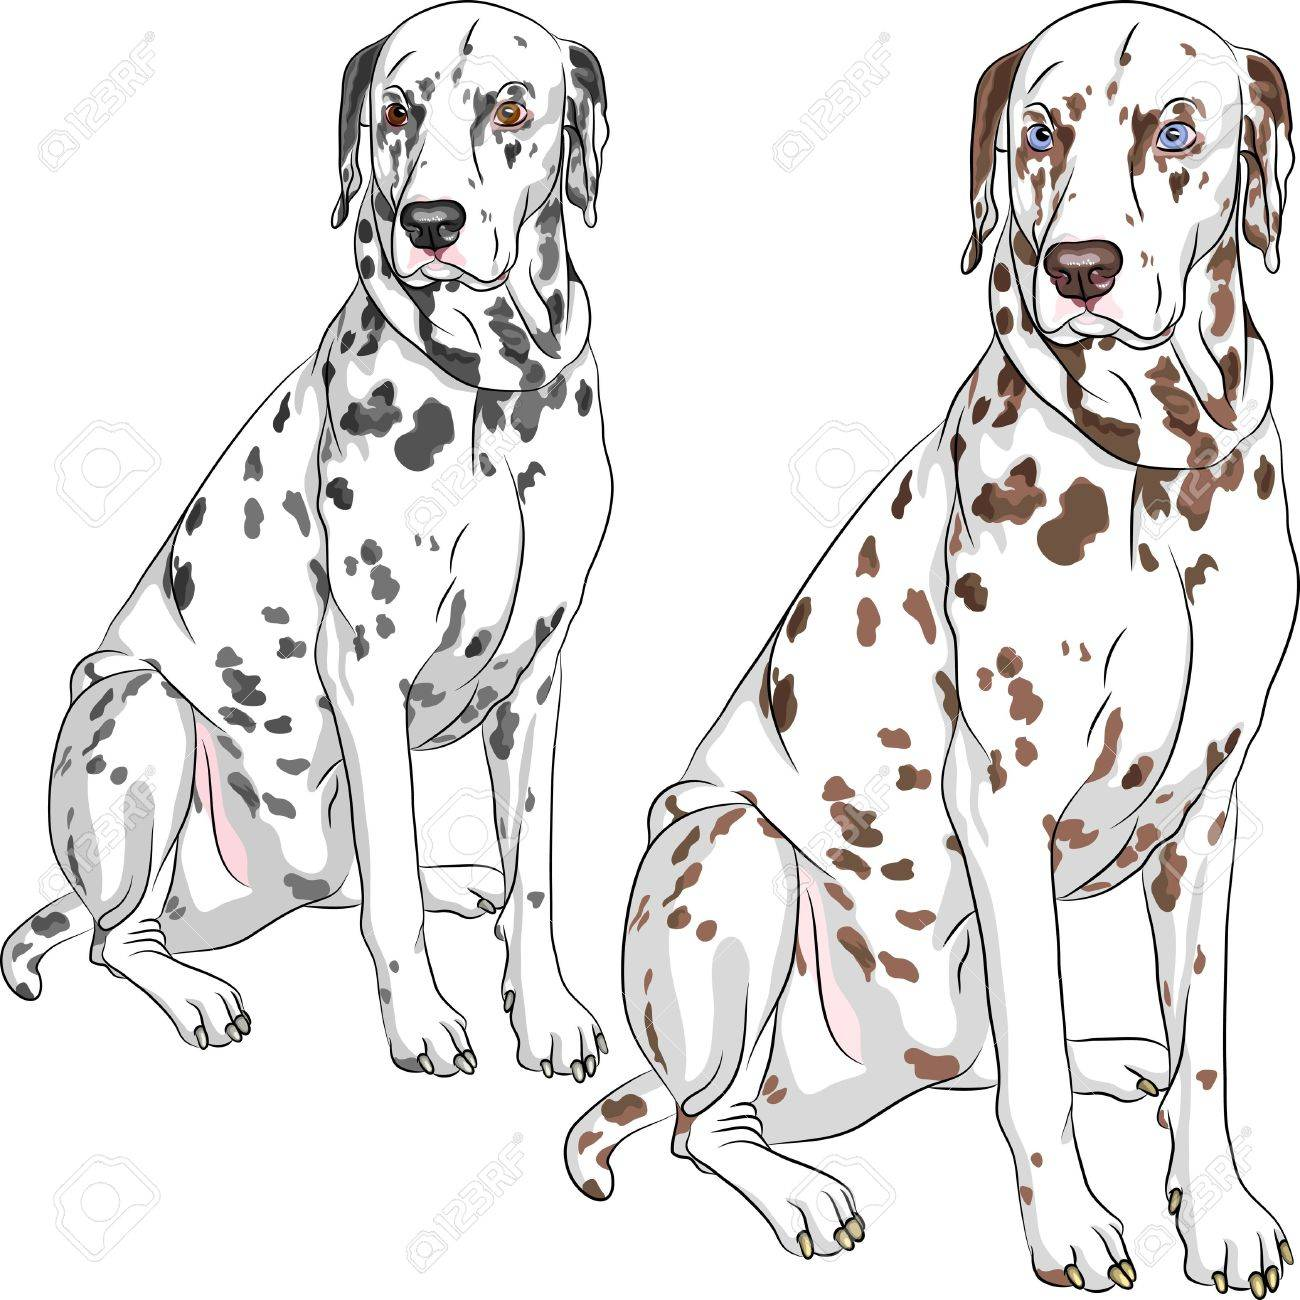 Sketch of the cheerful serious dog Dalmatian breed two different color, one - with black spots and brown eyes, the second - with brown spots and blue eyes Stock Vector - 18083885